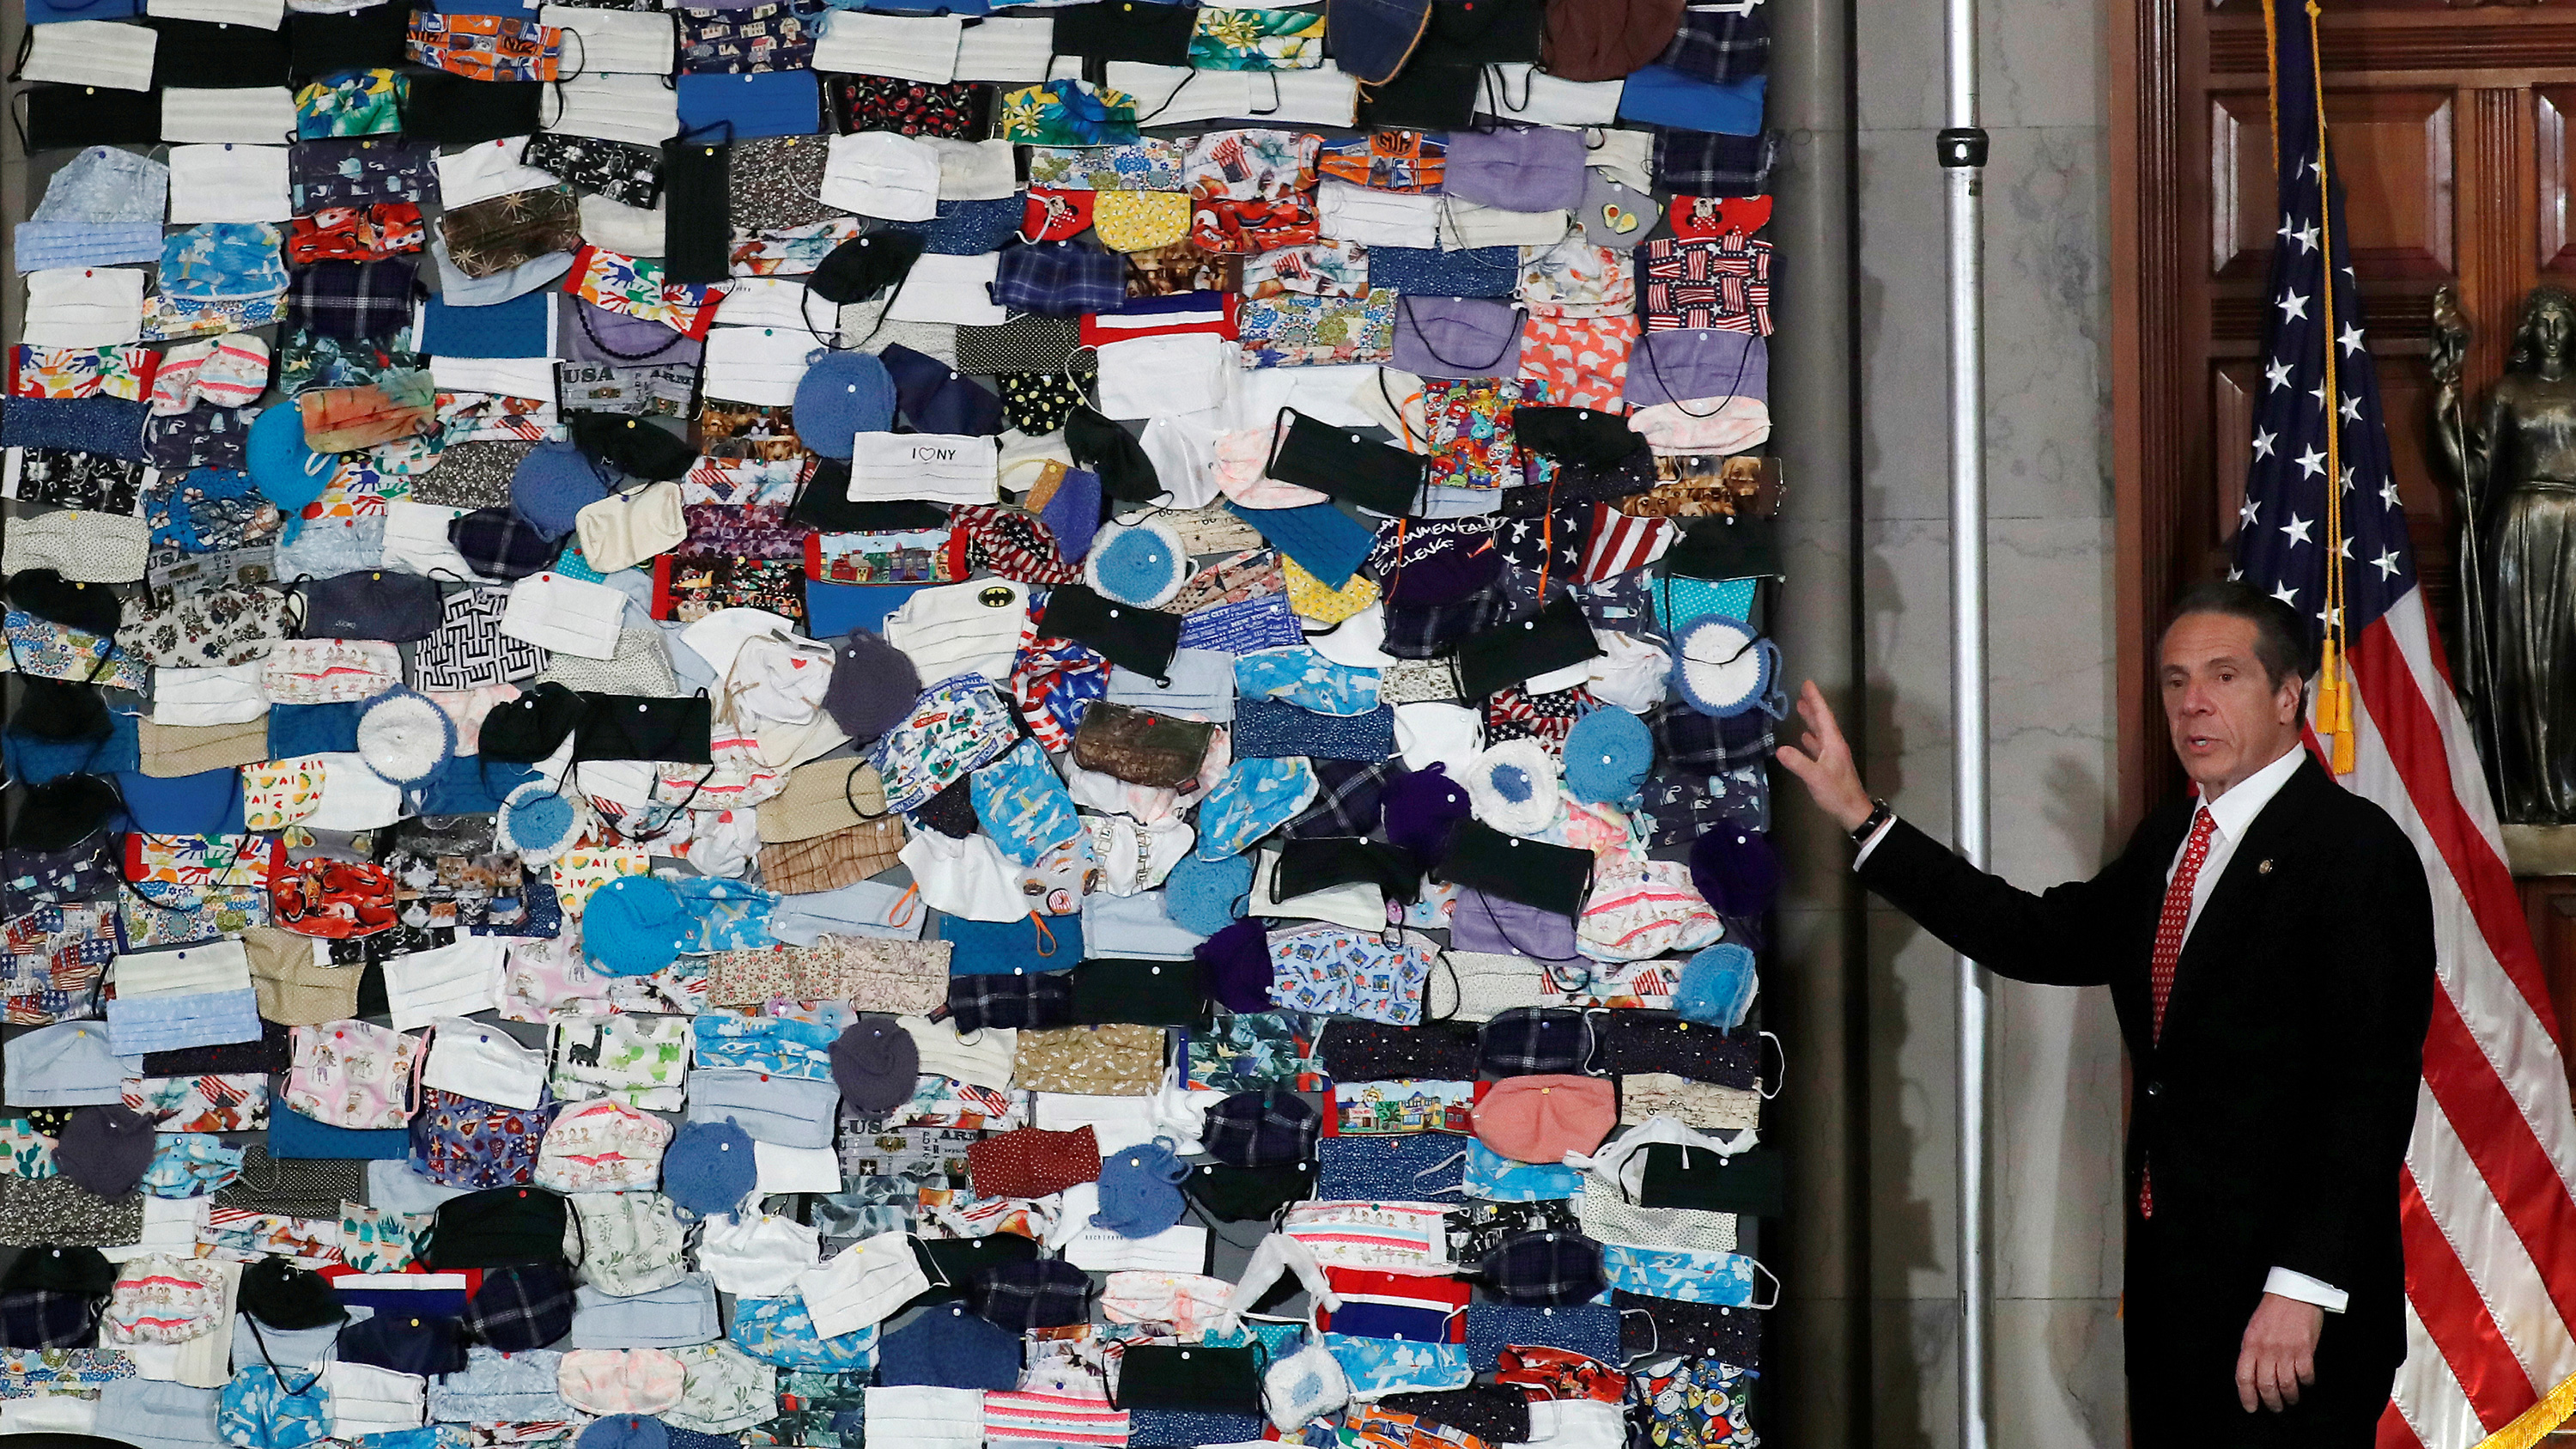 The photo shows the governor in front of a large quilted patchwork of masks.